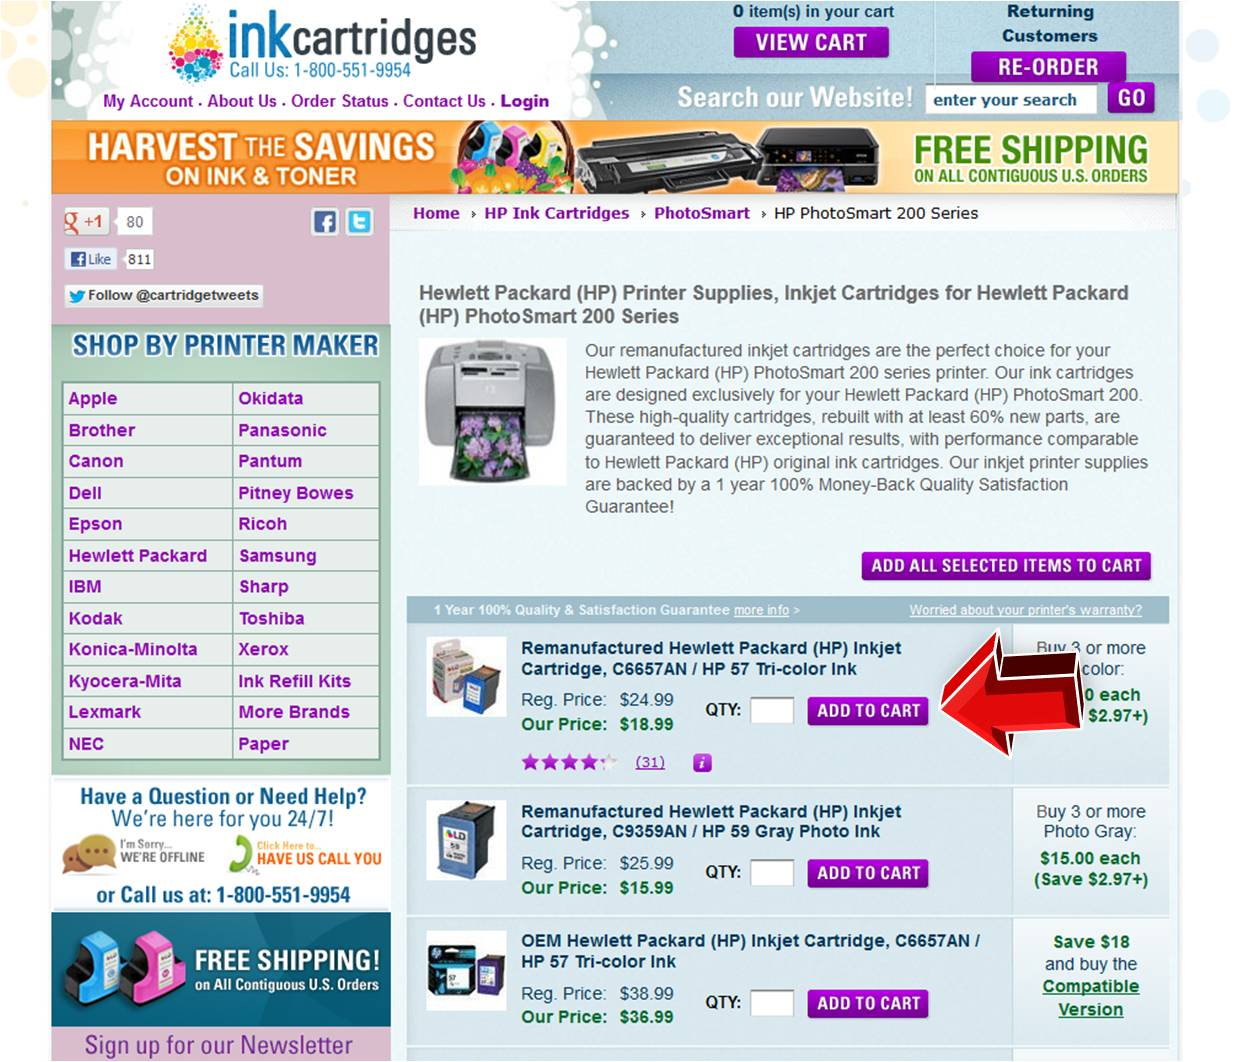 inkcartridges com coupon code